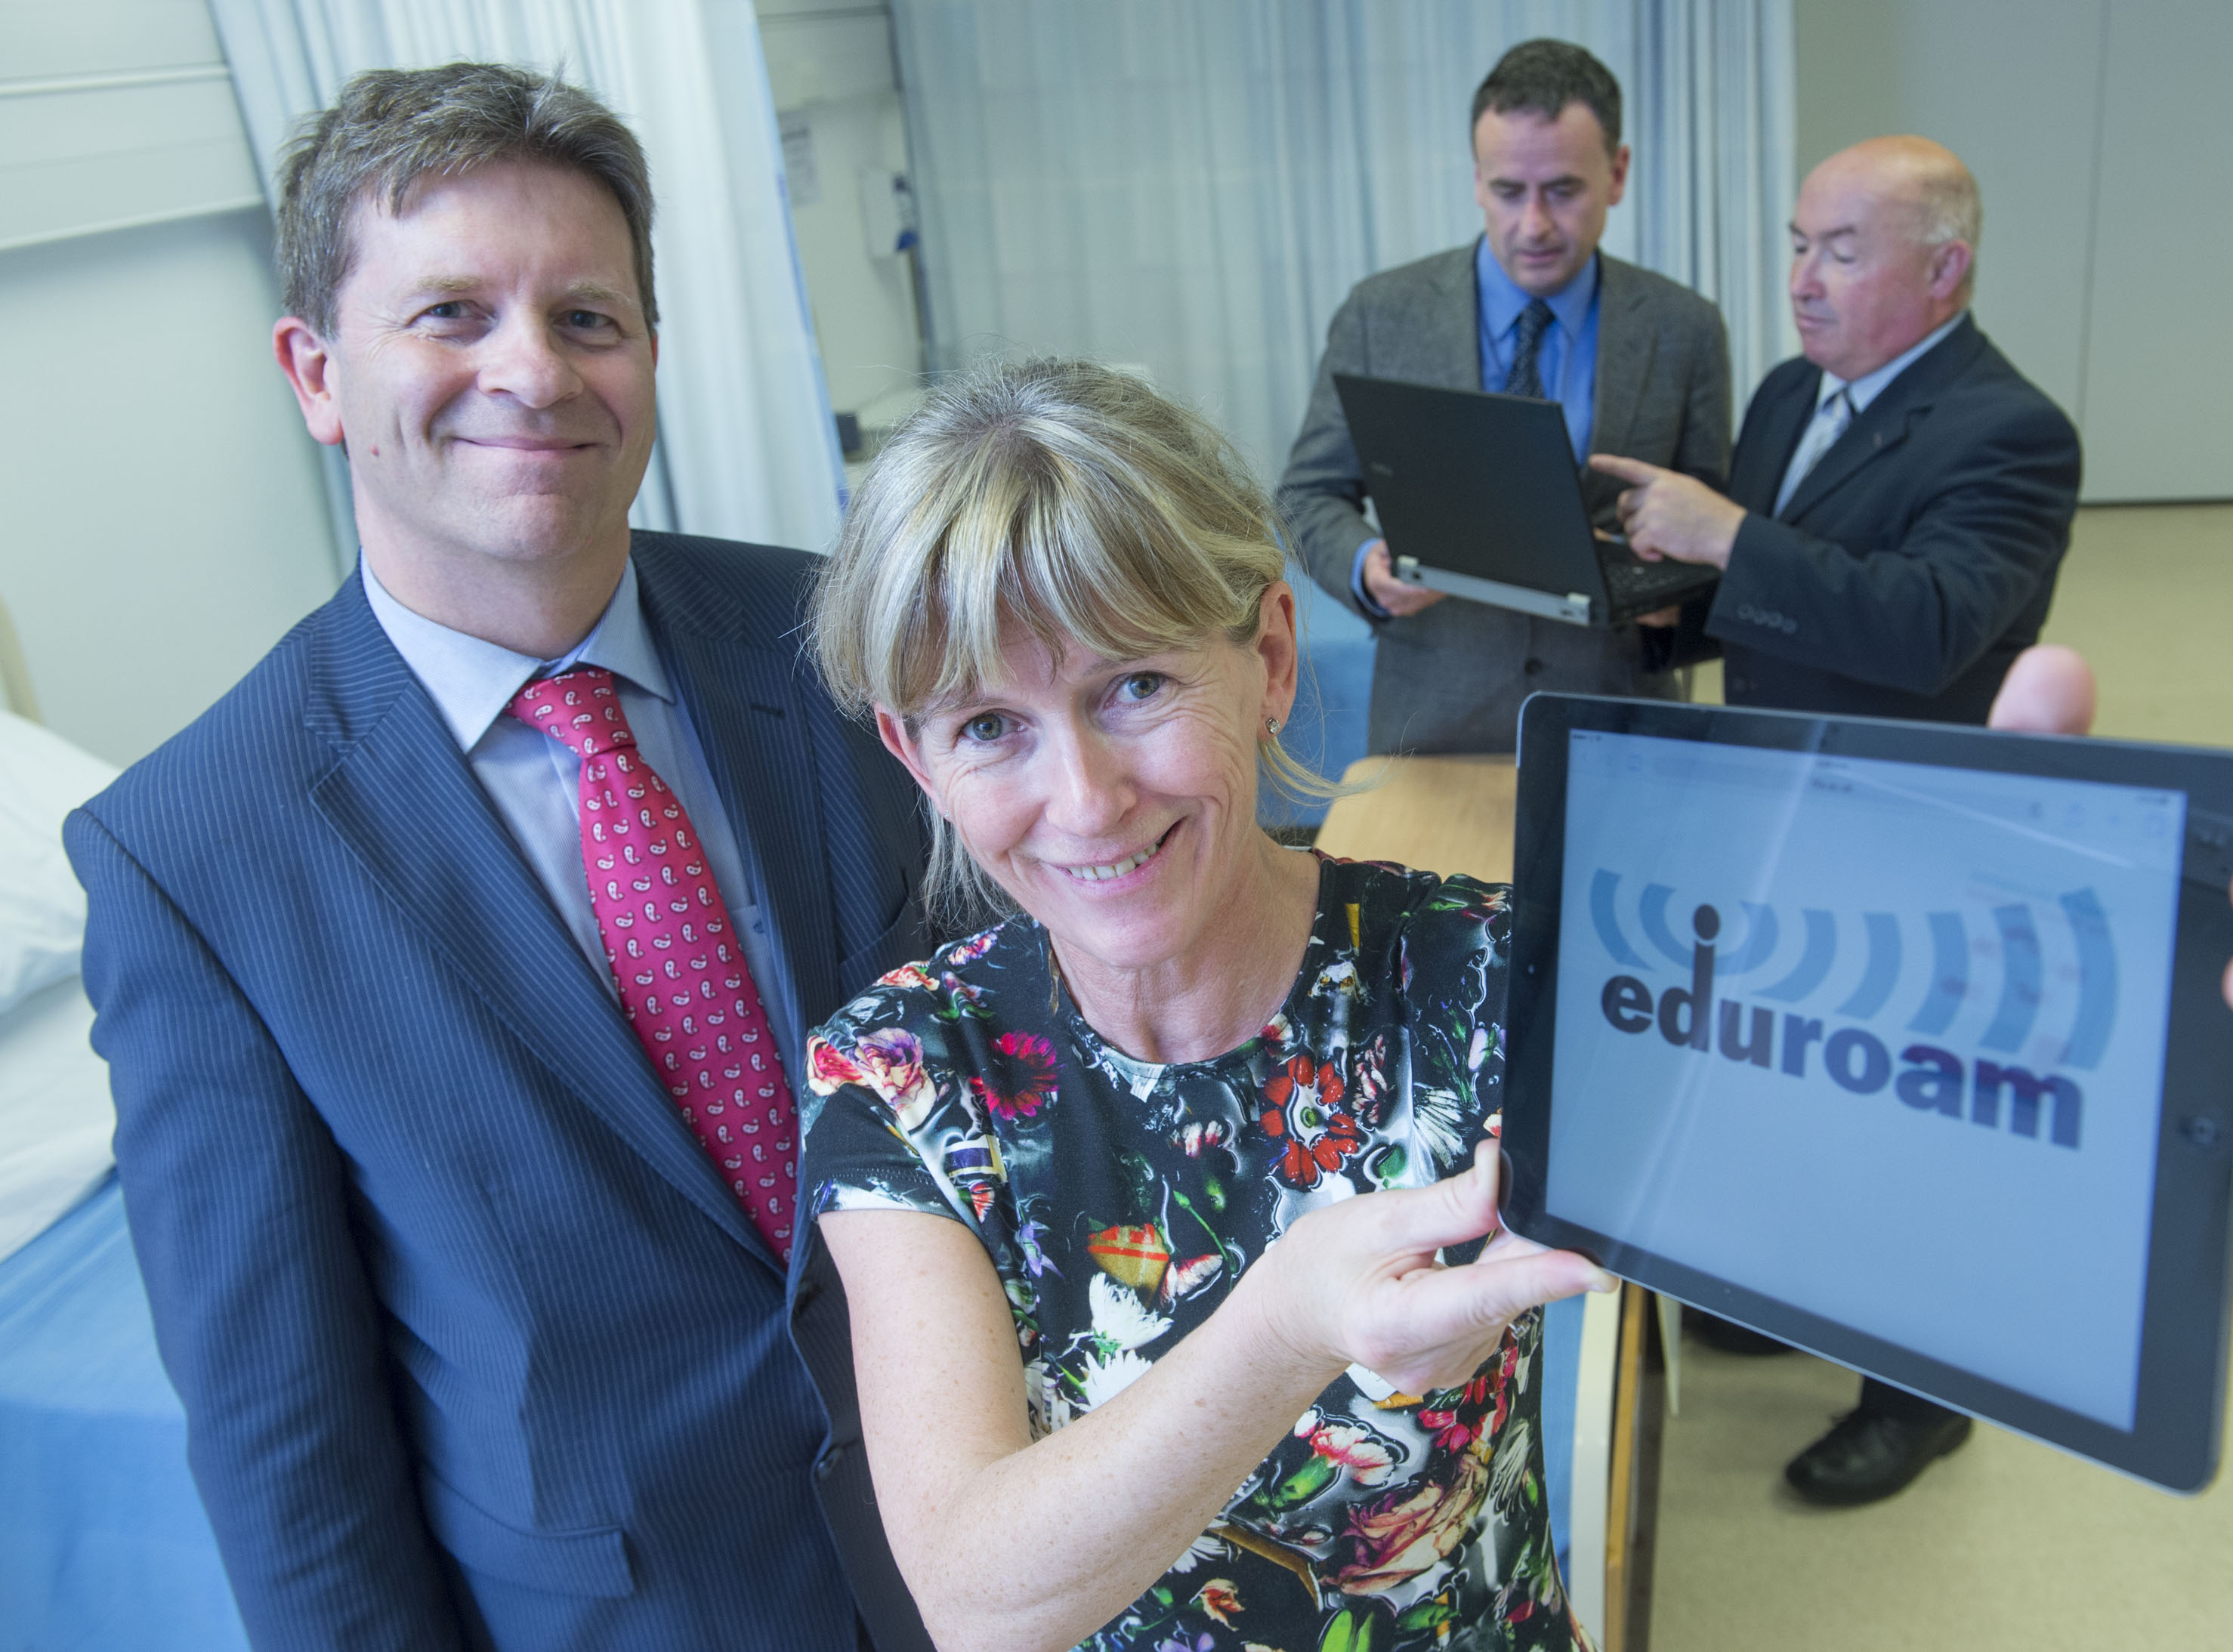 Roll-out of EDUROAM Across South/South West Hospital Group